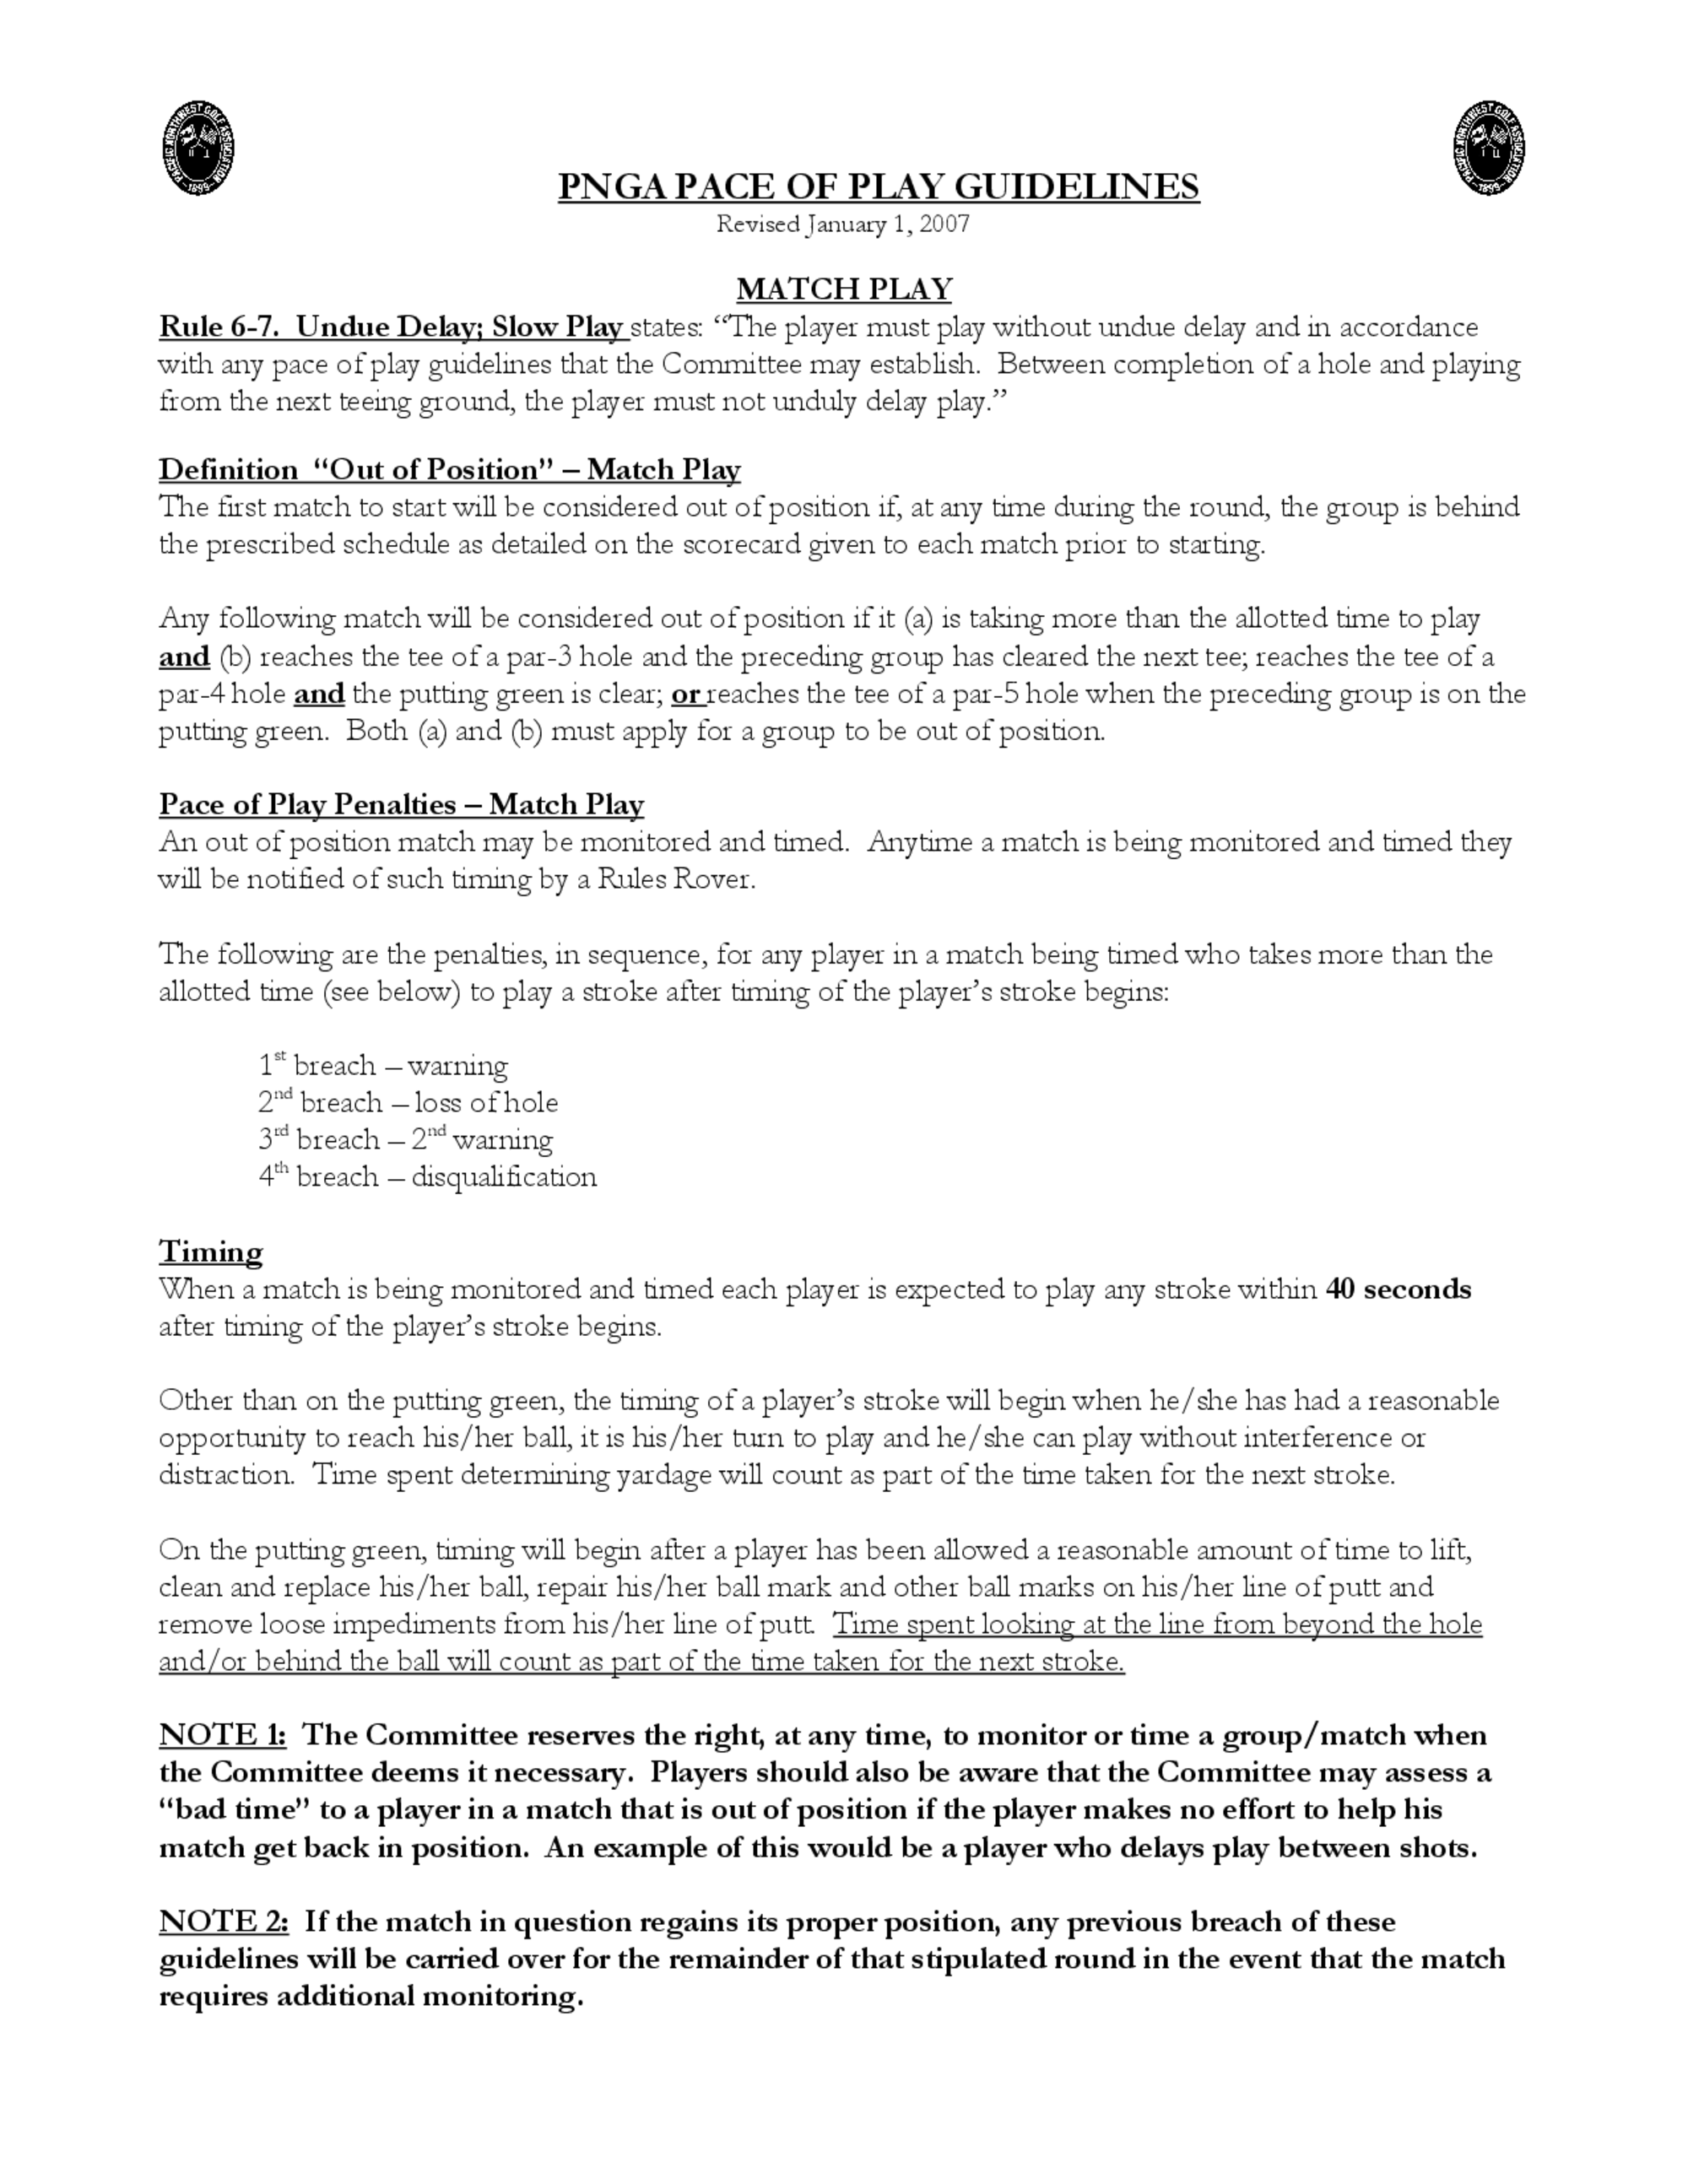 2007 pnga pace of play guidelines   match play  1